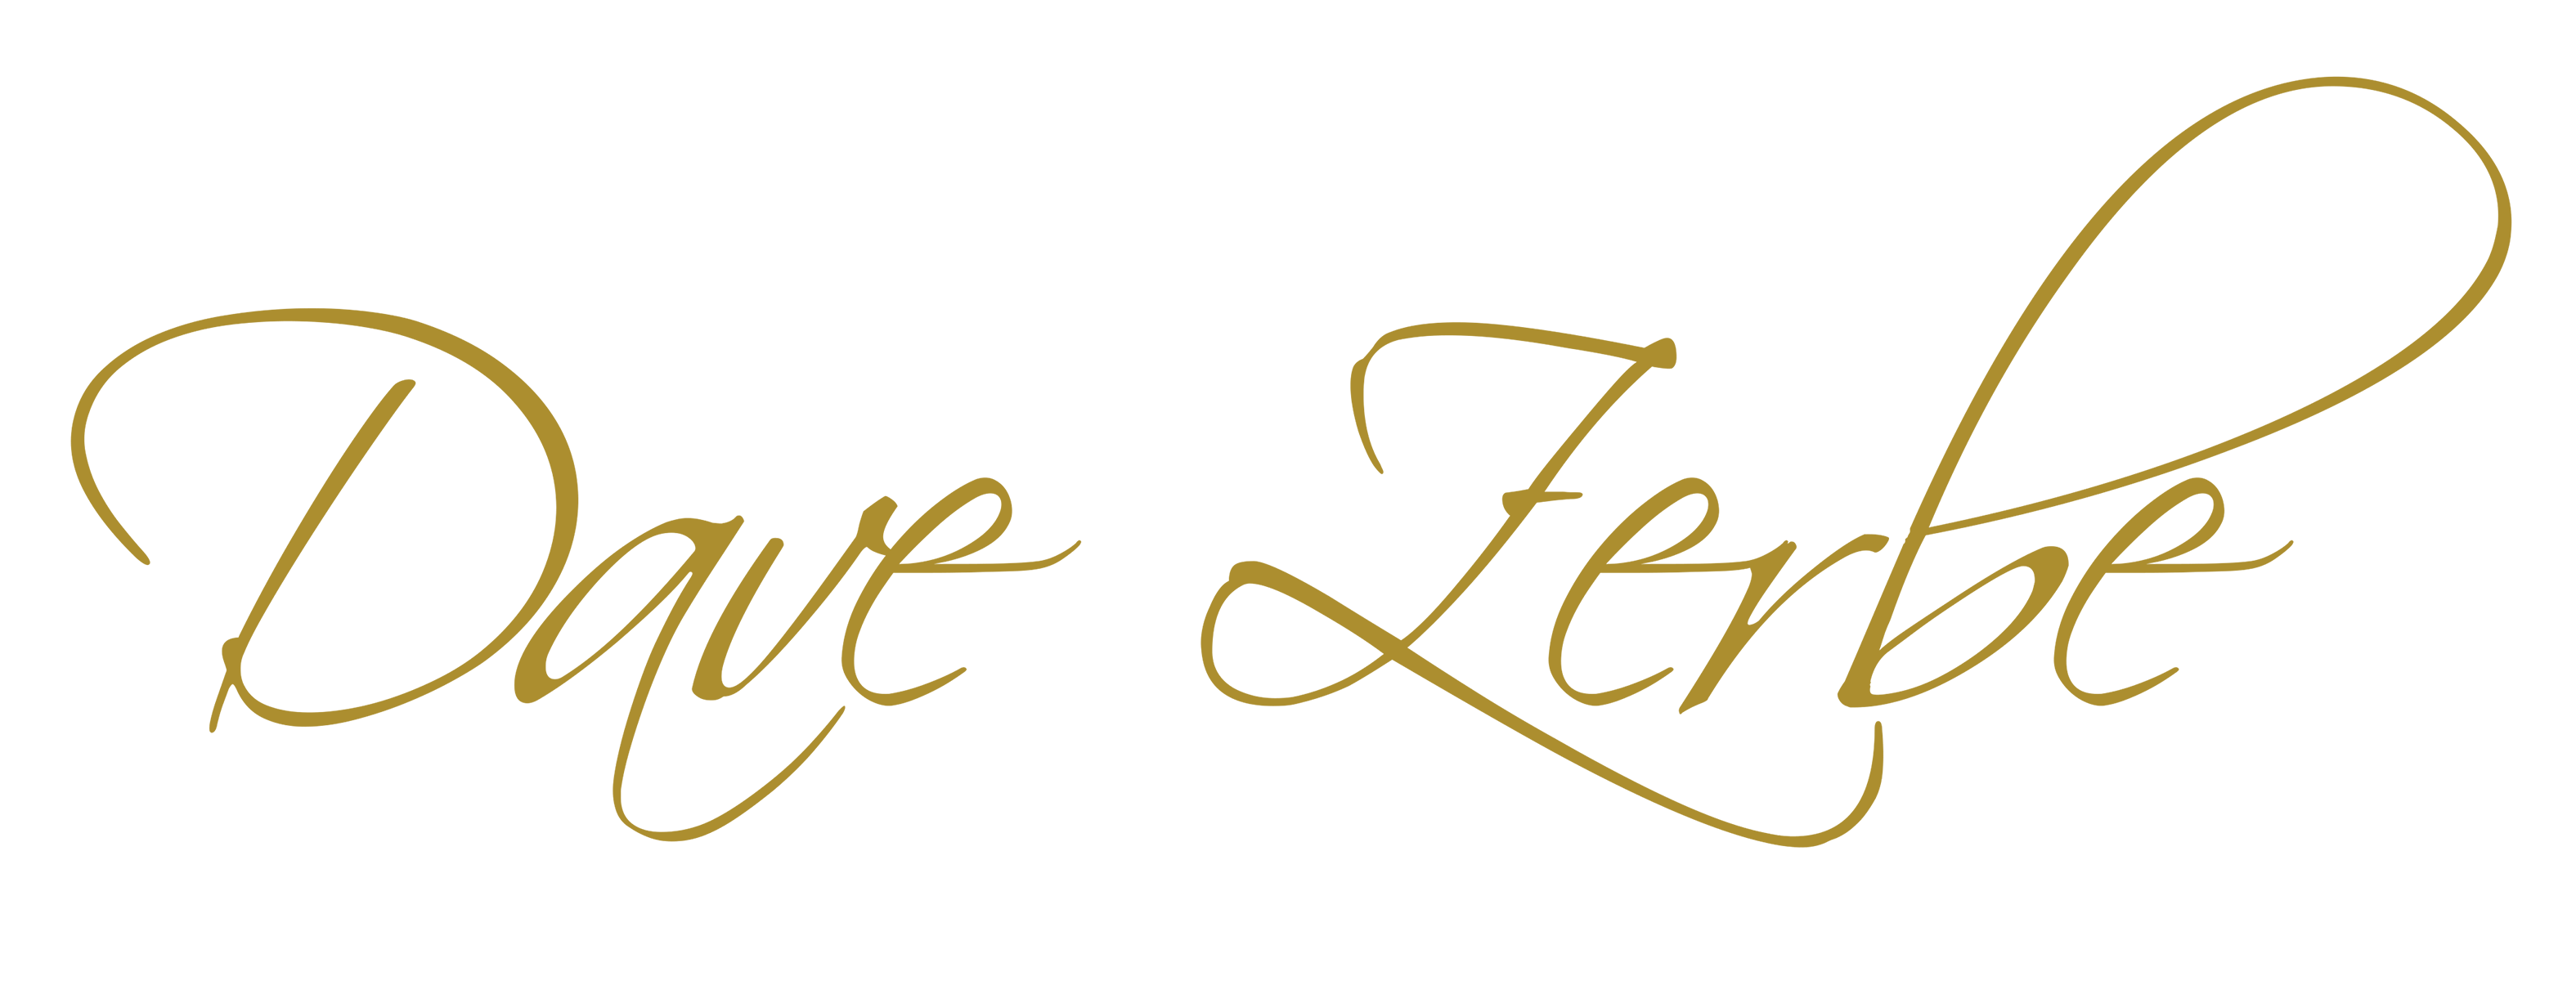 Dave Zerbe Photography